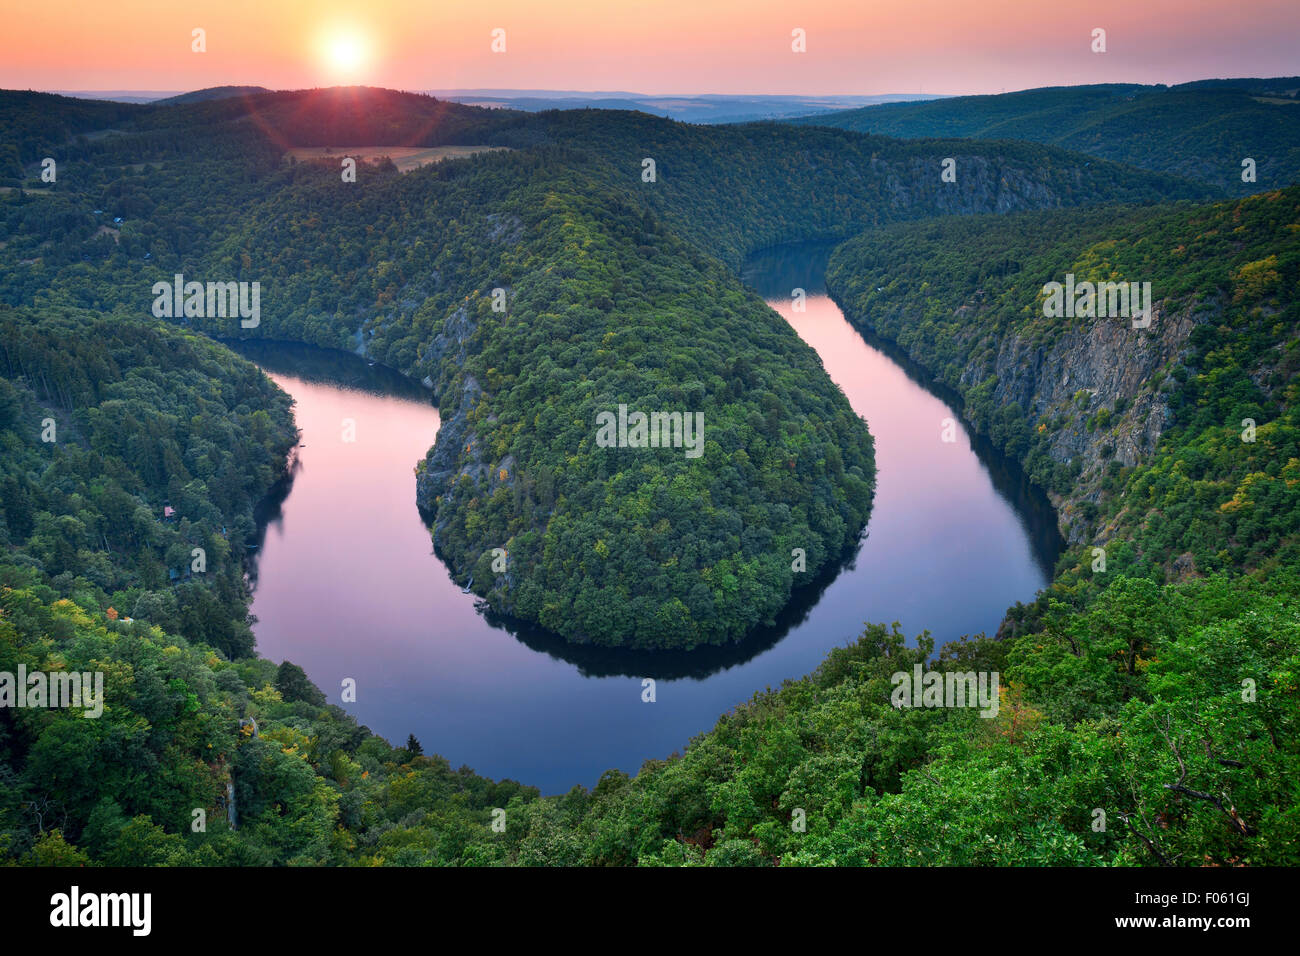 River Bend. Beautiful meander of Vltava river in Czech Republic during summer sunset. - Stock Image